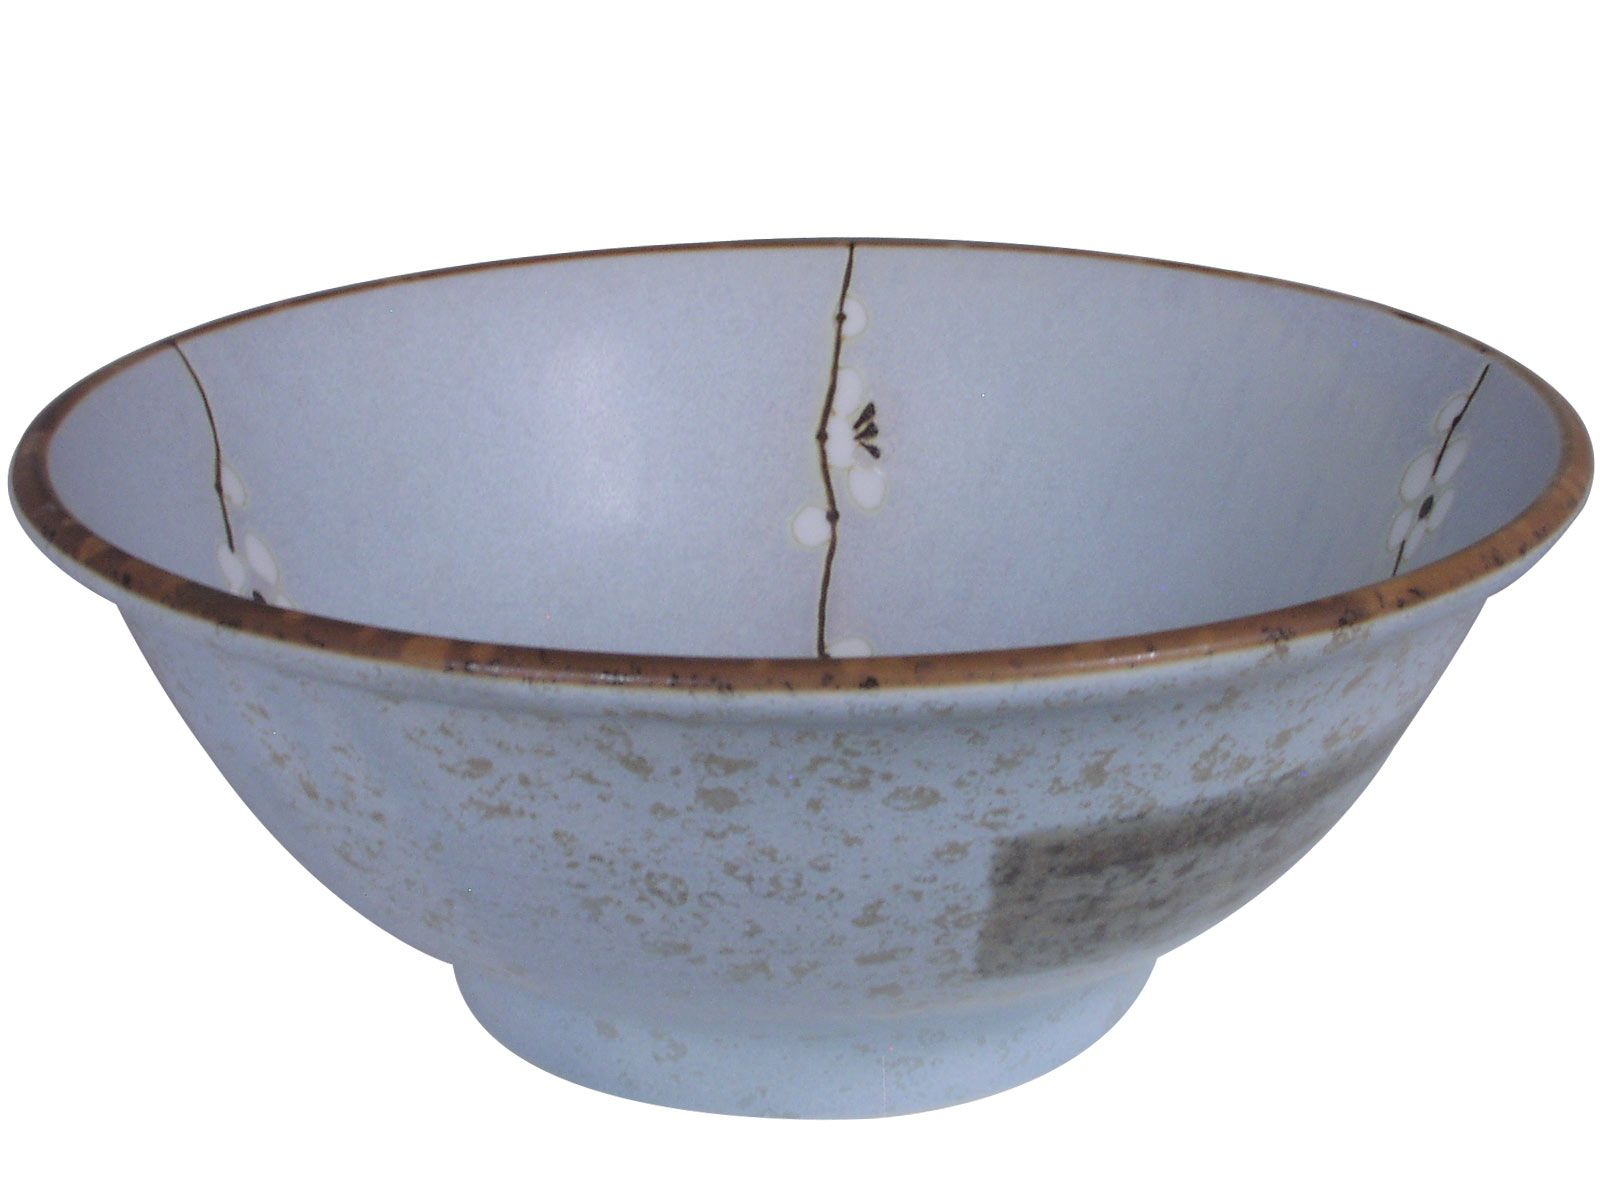 8 1 4 Inch Cherry Blossom Japanese Noodle Bowl Bowl Japanese